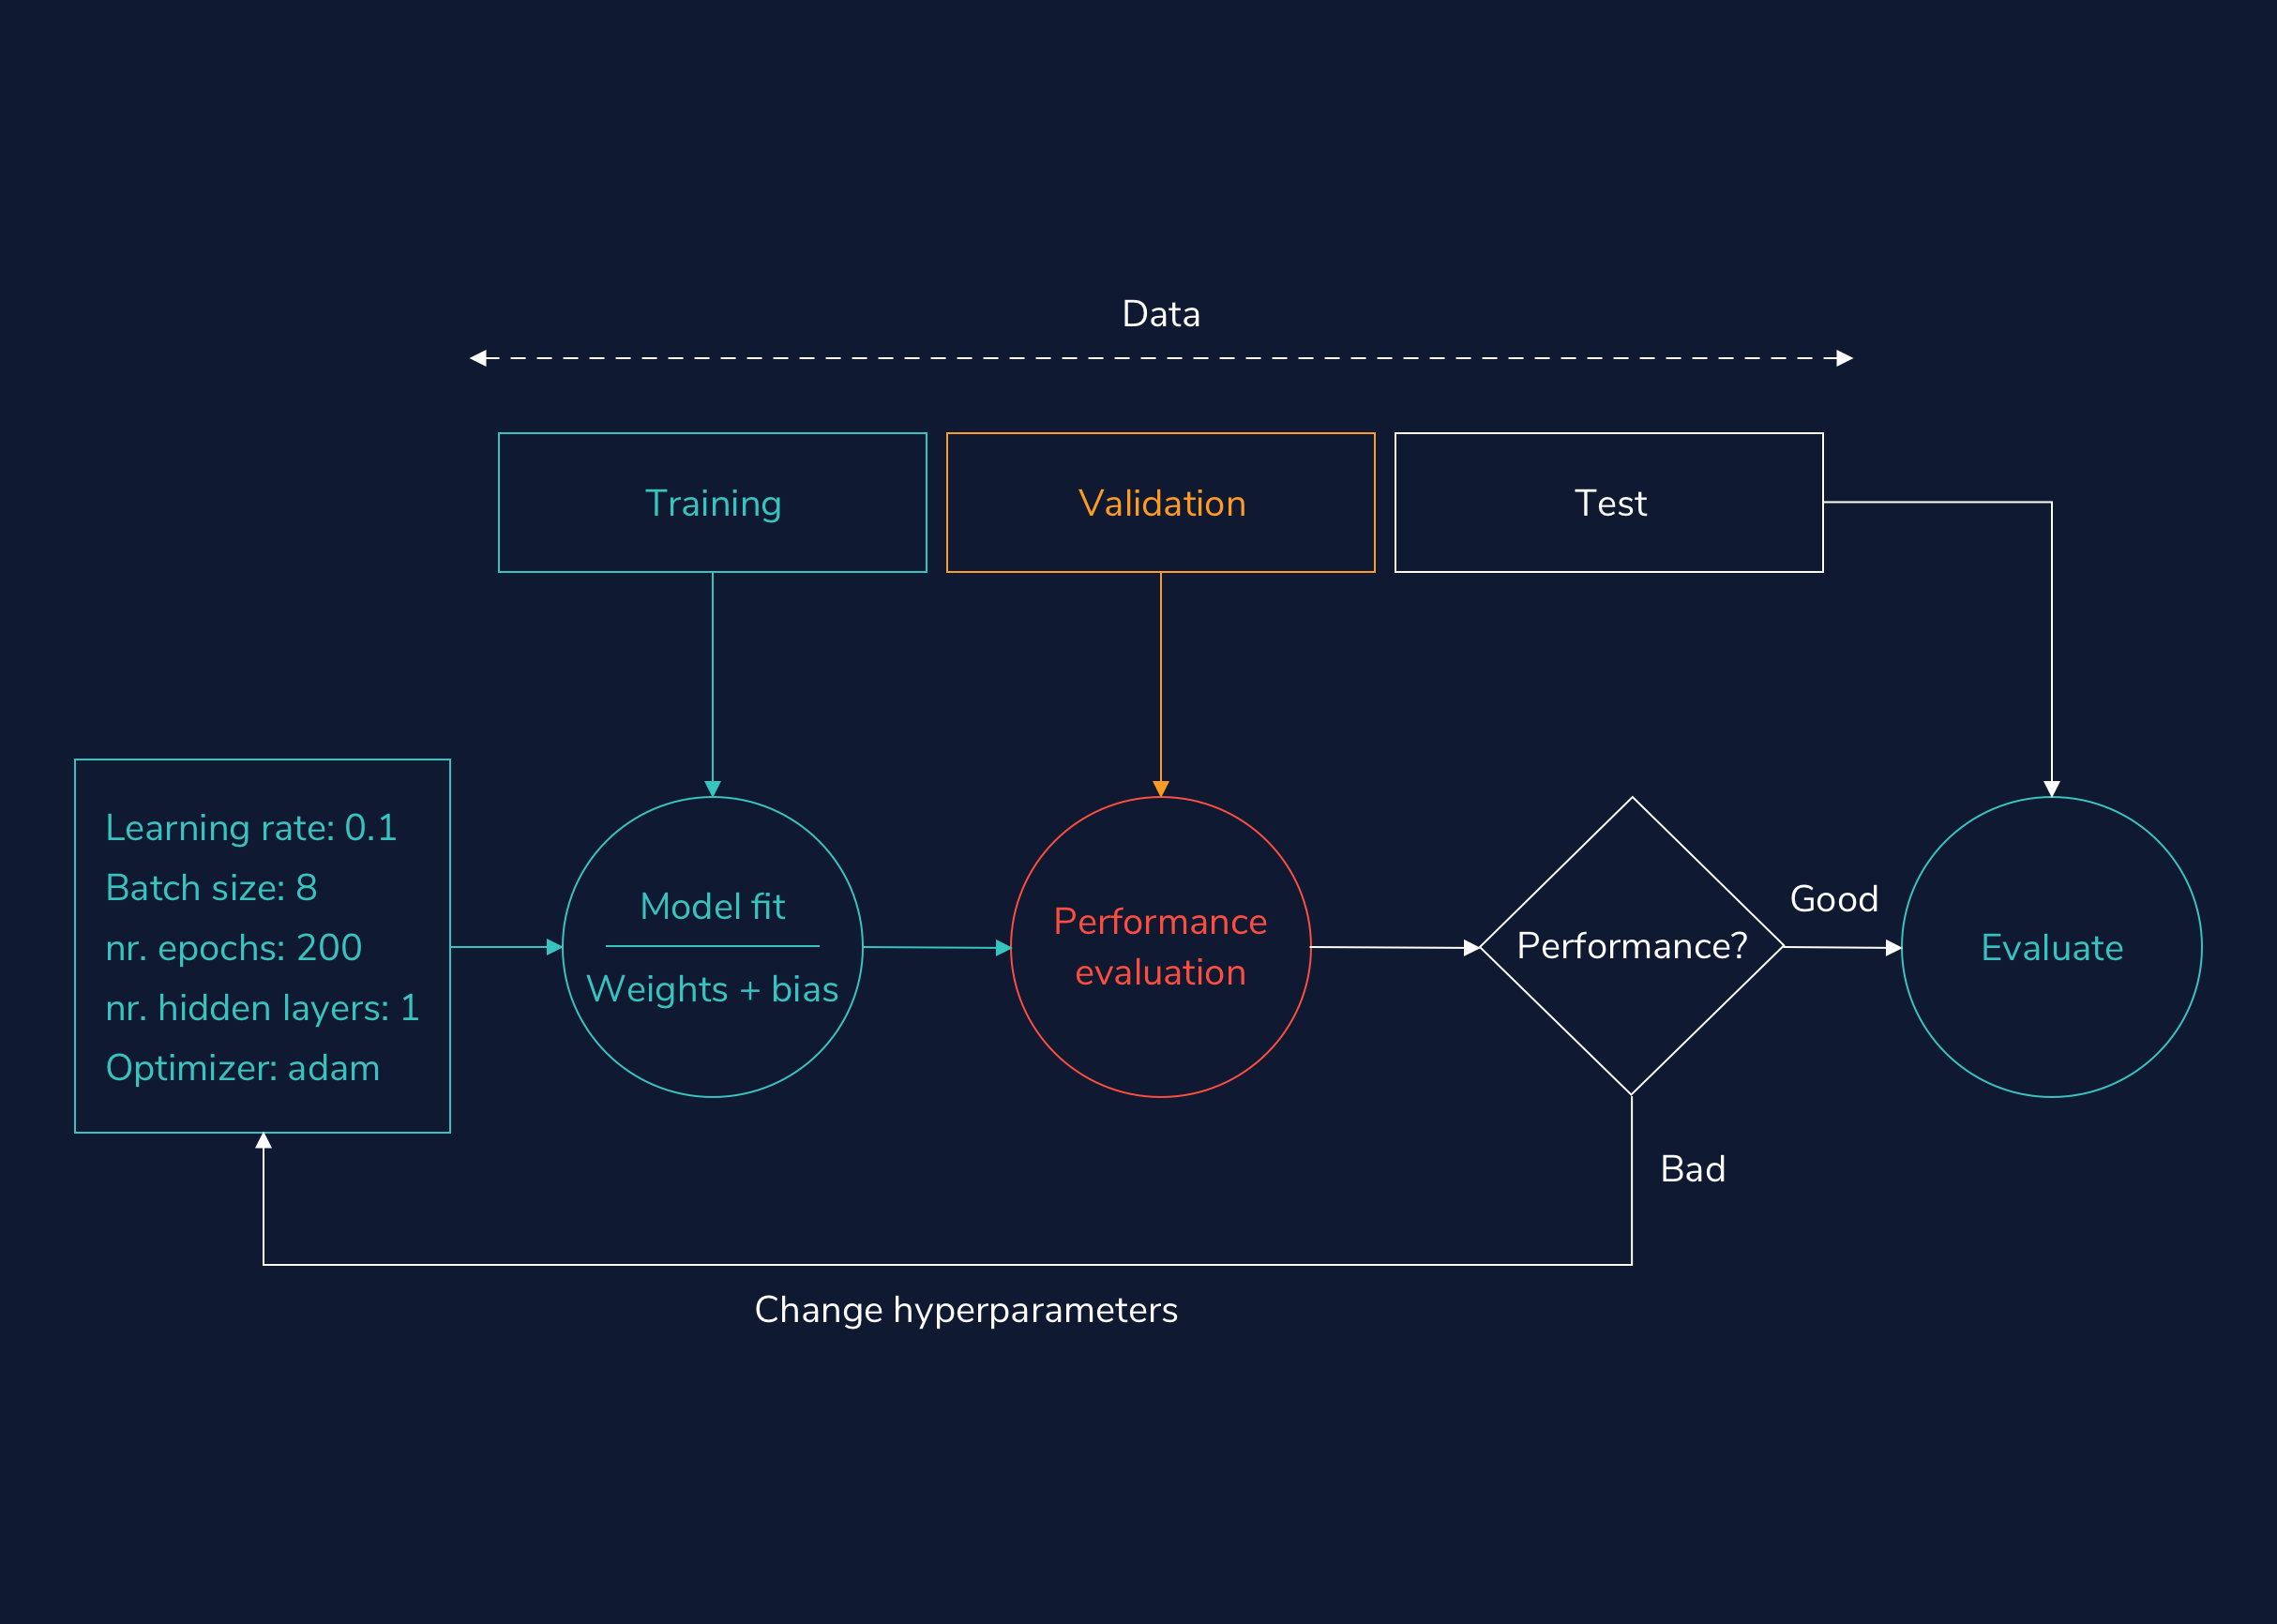 This flowchart shows the hyperparameter tuning process for a deep learning model. Three sets of data are used with the model: training, validation, and test. Training data is used to adjust the weights and biases of the model, while validation data is used to evaluate the model's performance. If the validation performance is good, a separate set of test data is used to check if the model still performs well with a completely new set of data. However, if the validation performance isn't good, the model's hyperparameters are tweaked and it is retrained to see if performance is improved. These hyper parameters include: the learning rate, batch size, number of epochs, number of hidden layers, and optimizer.